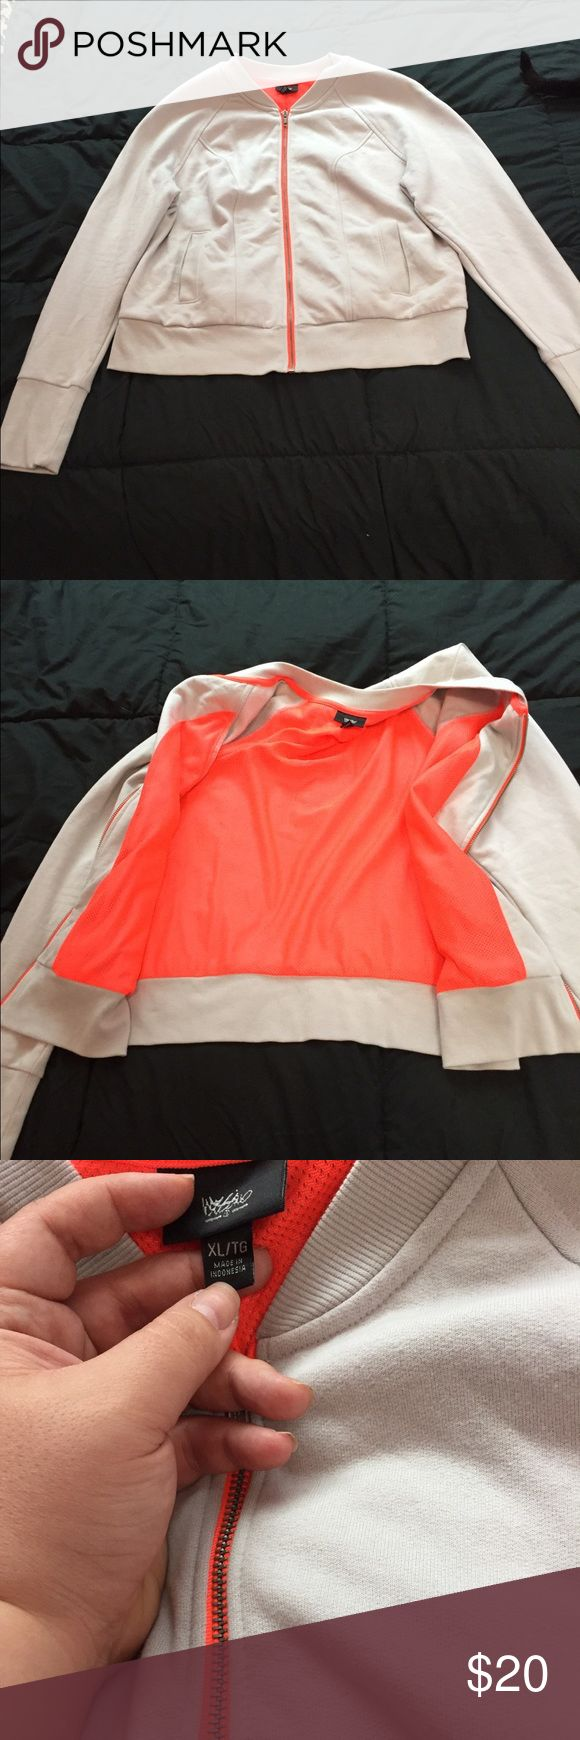 Gray Zip-Up Sweatshirt w/Orange Lining Cute light gray zip up crew neck sweatshirt with orange mesh lining. Never actually worn. Bought it for a costume for a musical but we didn't end up using it. Mossimo Supply Co. Jackets & Coats